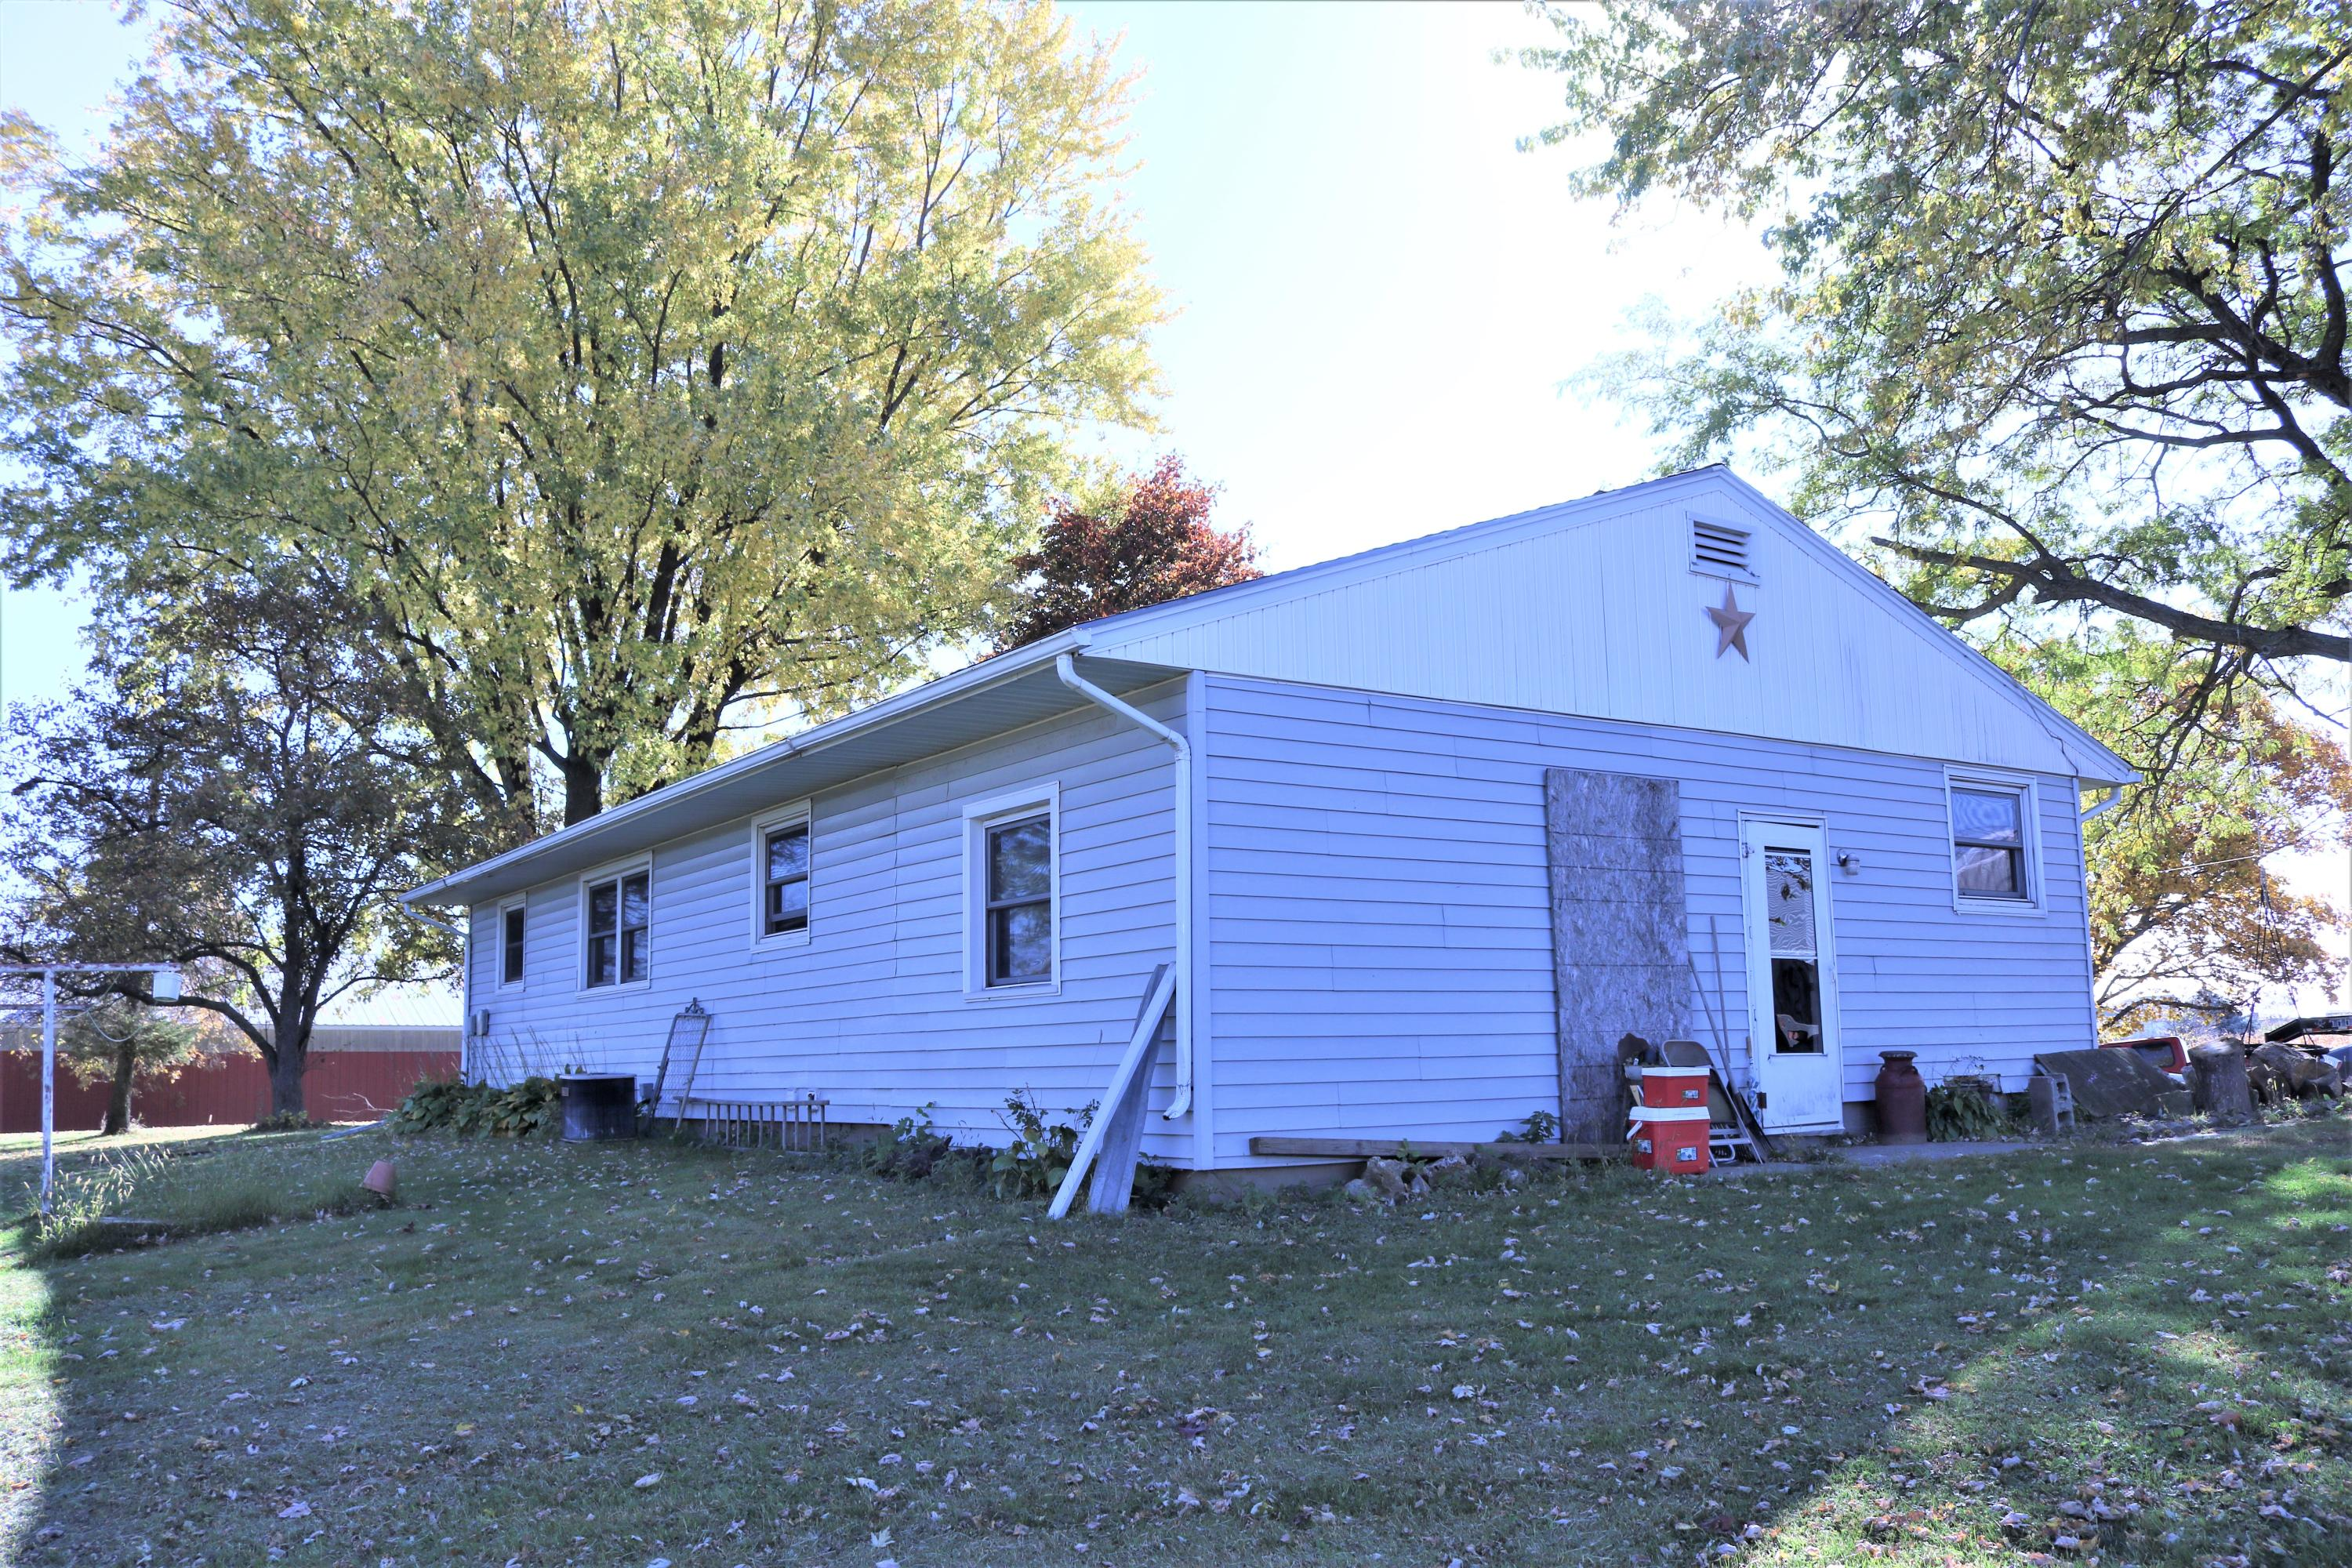 S2679 Williams LN, Harmony, Wisconsin 54621, 2 Bedrooms Bedrooms, ,1 BathroomBathrooms,Single-family,For Sale,Williams LN,1714361